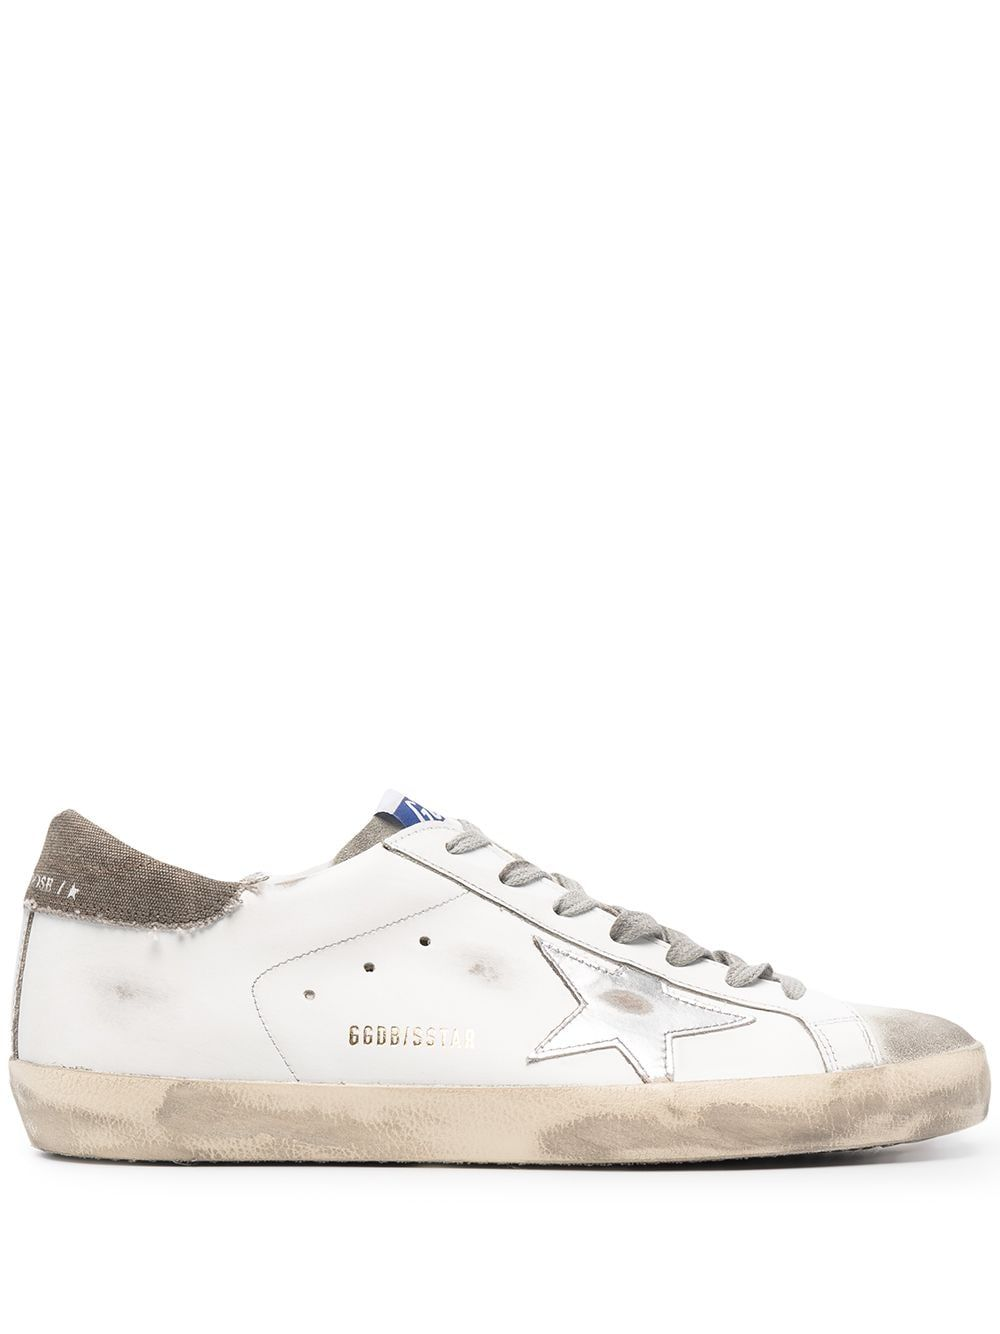 Golden Goose GOLDEN GOOSE MEN'S WHITE LEATHER SNEAKERS